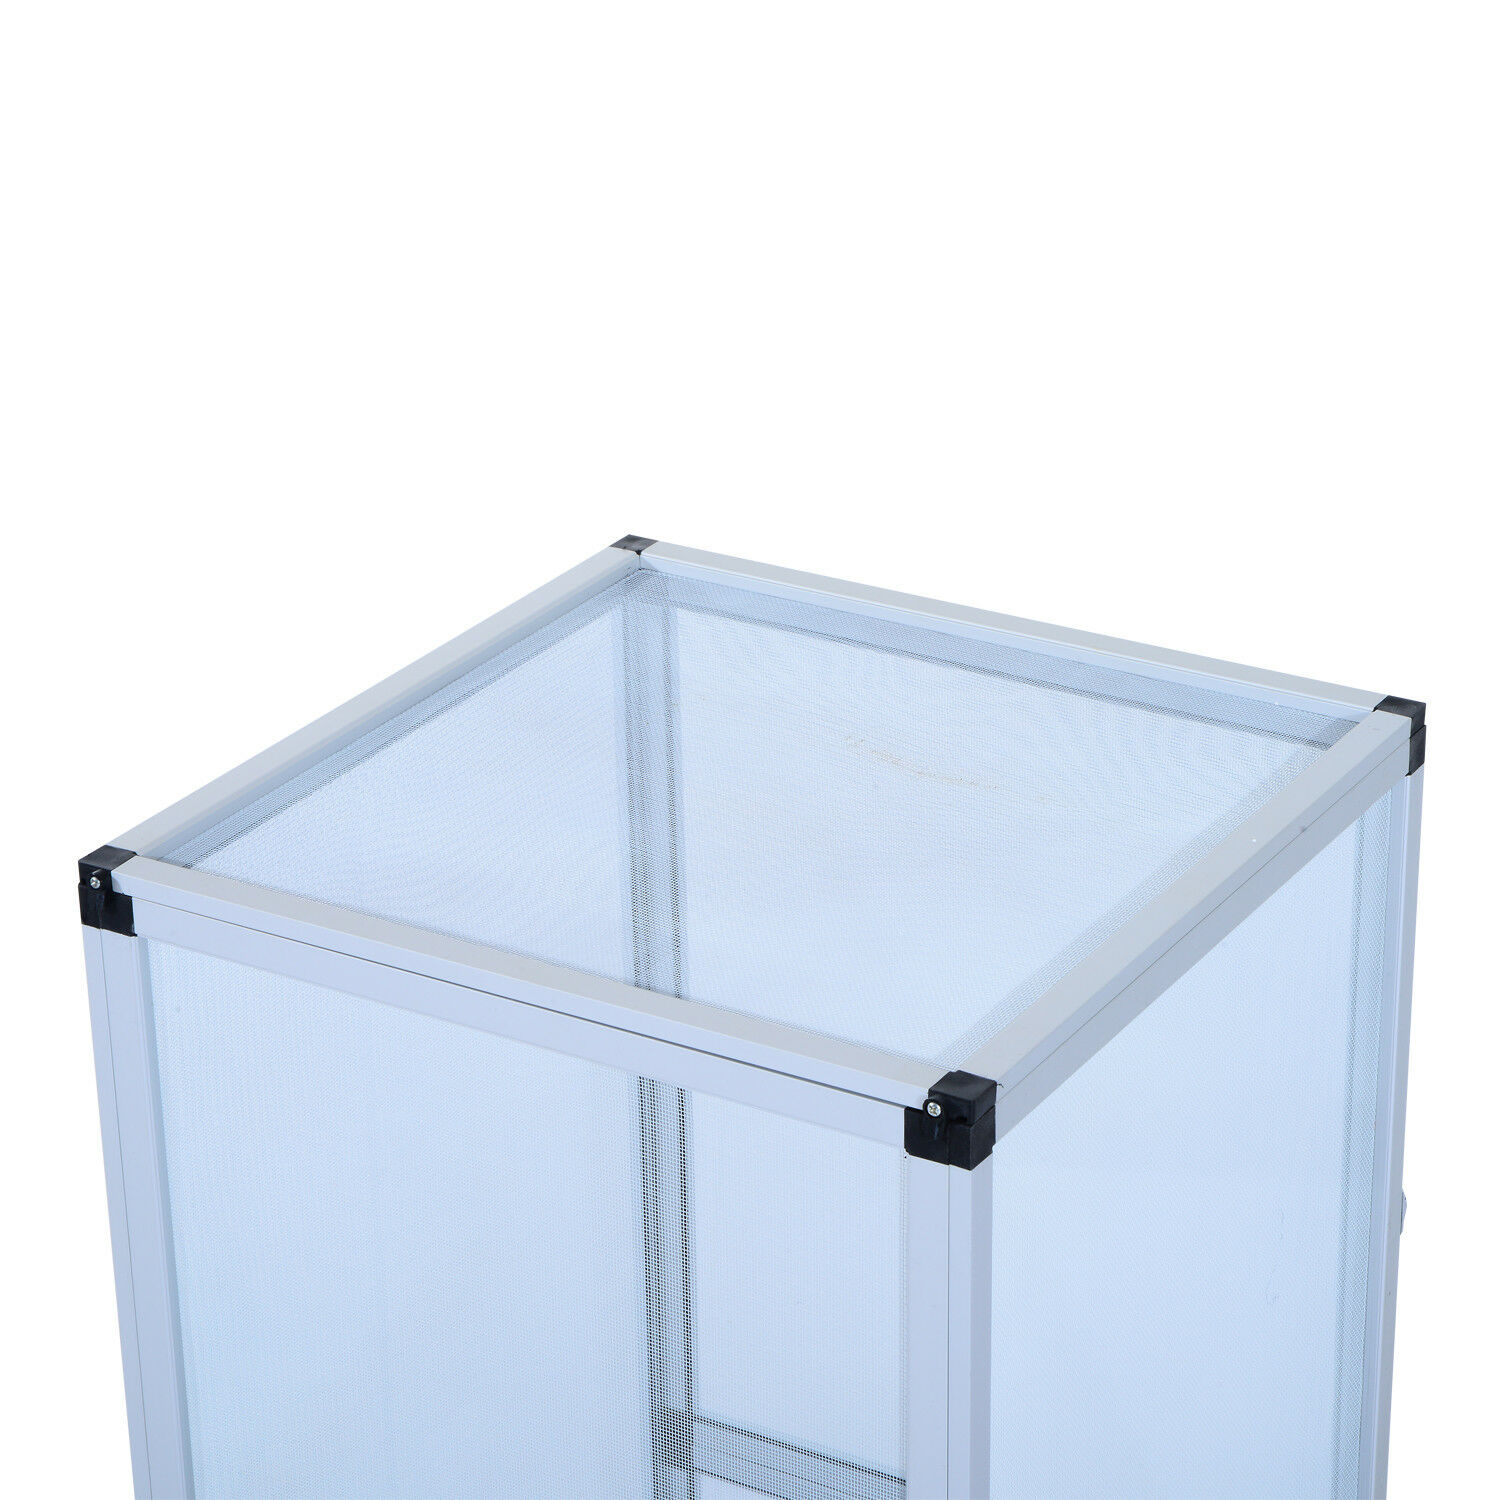 Reptile Cage Tank Home Pet Aluminum Breeding Box Insect Insect Insect Turtle Waterproof Large 81bcf4